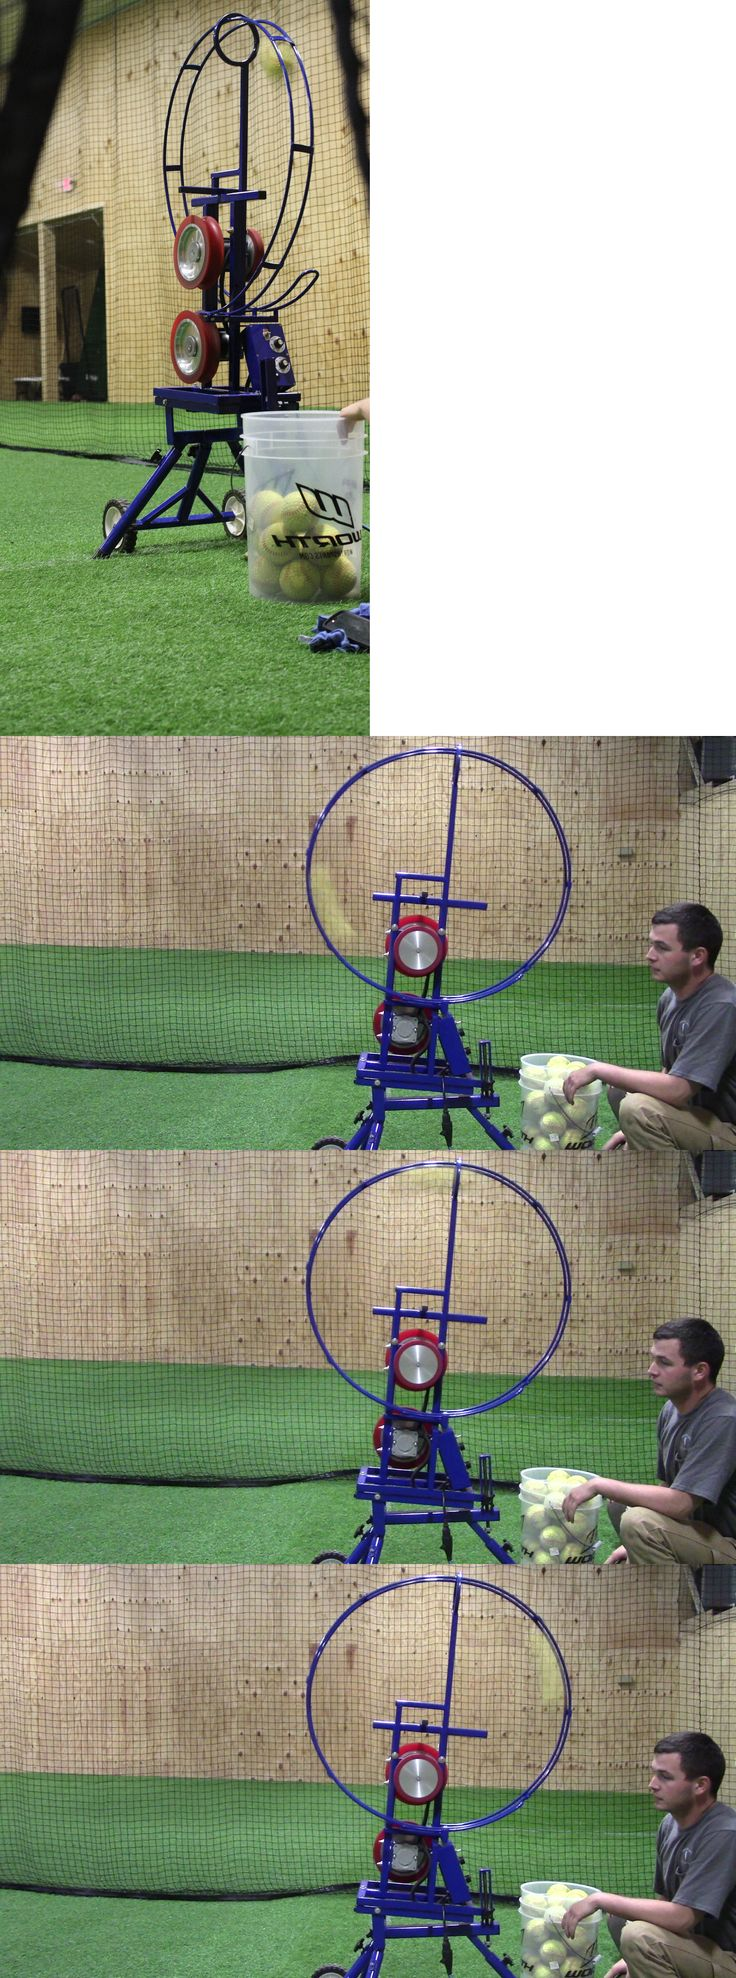 Pitching Machines 58061: Softball Pitching Machine With A Windmill Motion Designed For Fastpitch Only -> BUY IT NOW ONLY: $1995 on eBay!